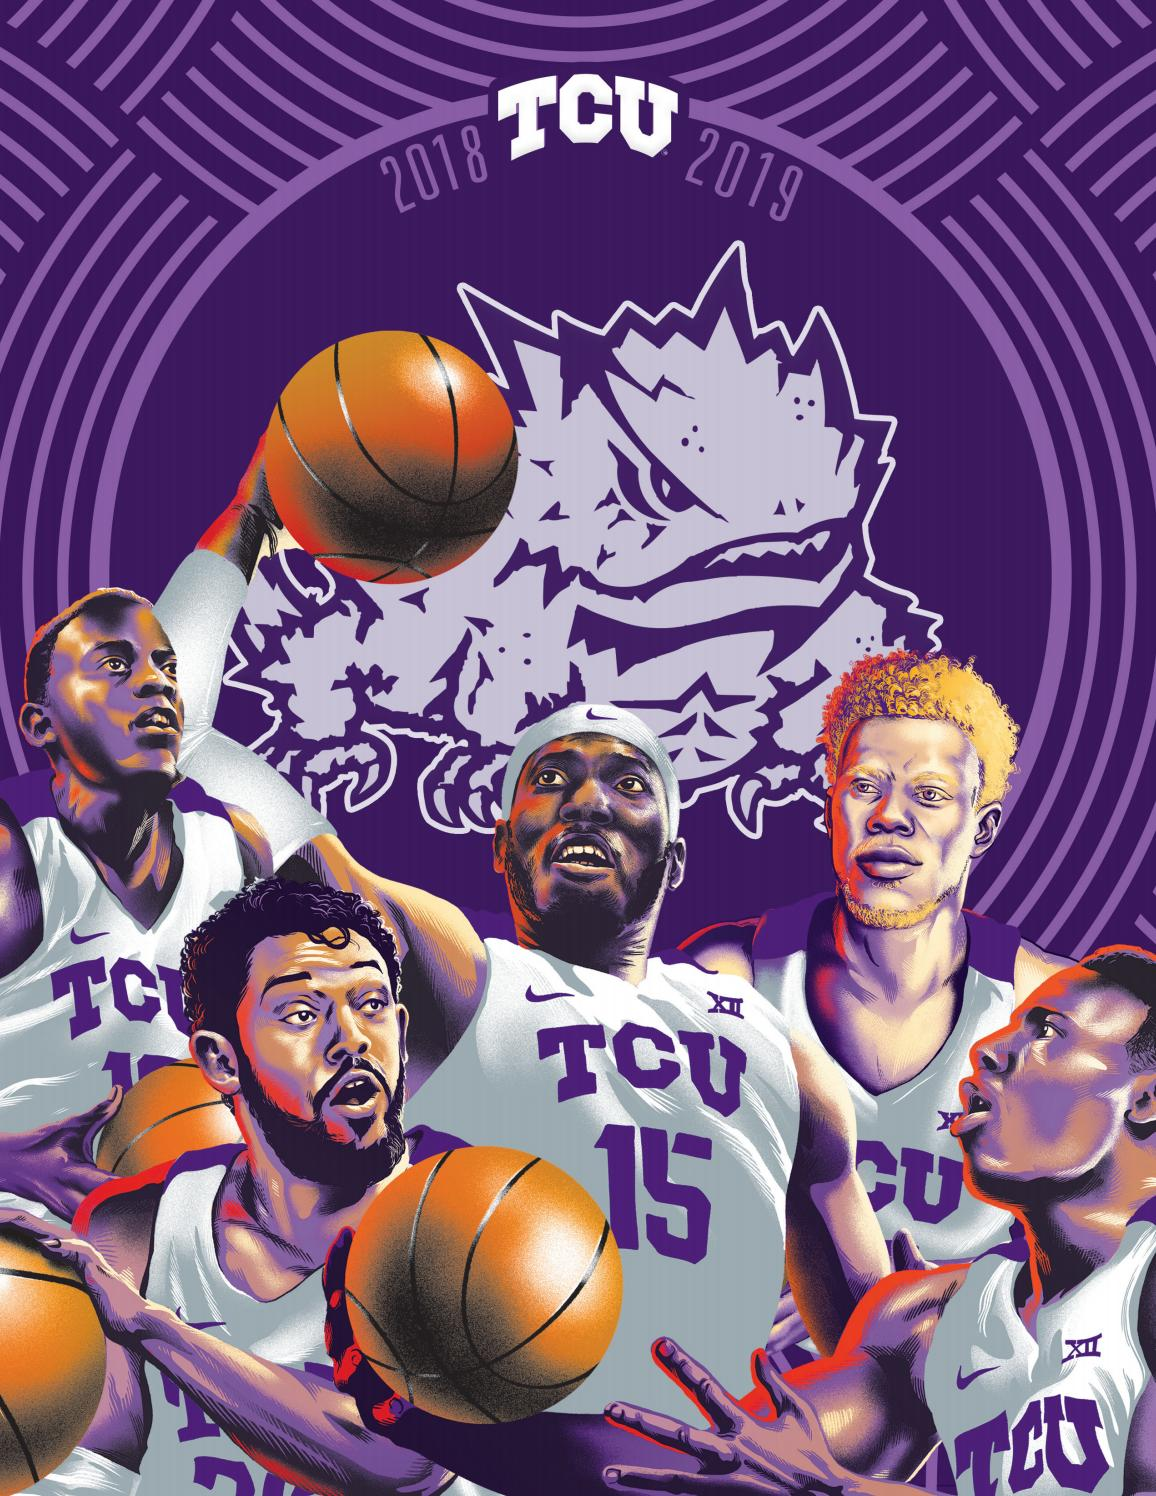 add0ee3b9 2018-19 TCU Men s Basketball Fact Book by TCU Athletics - issuu